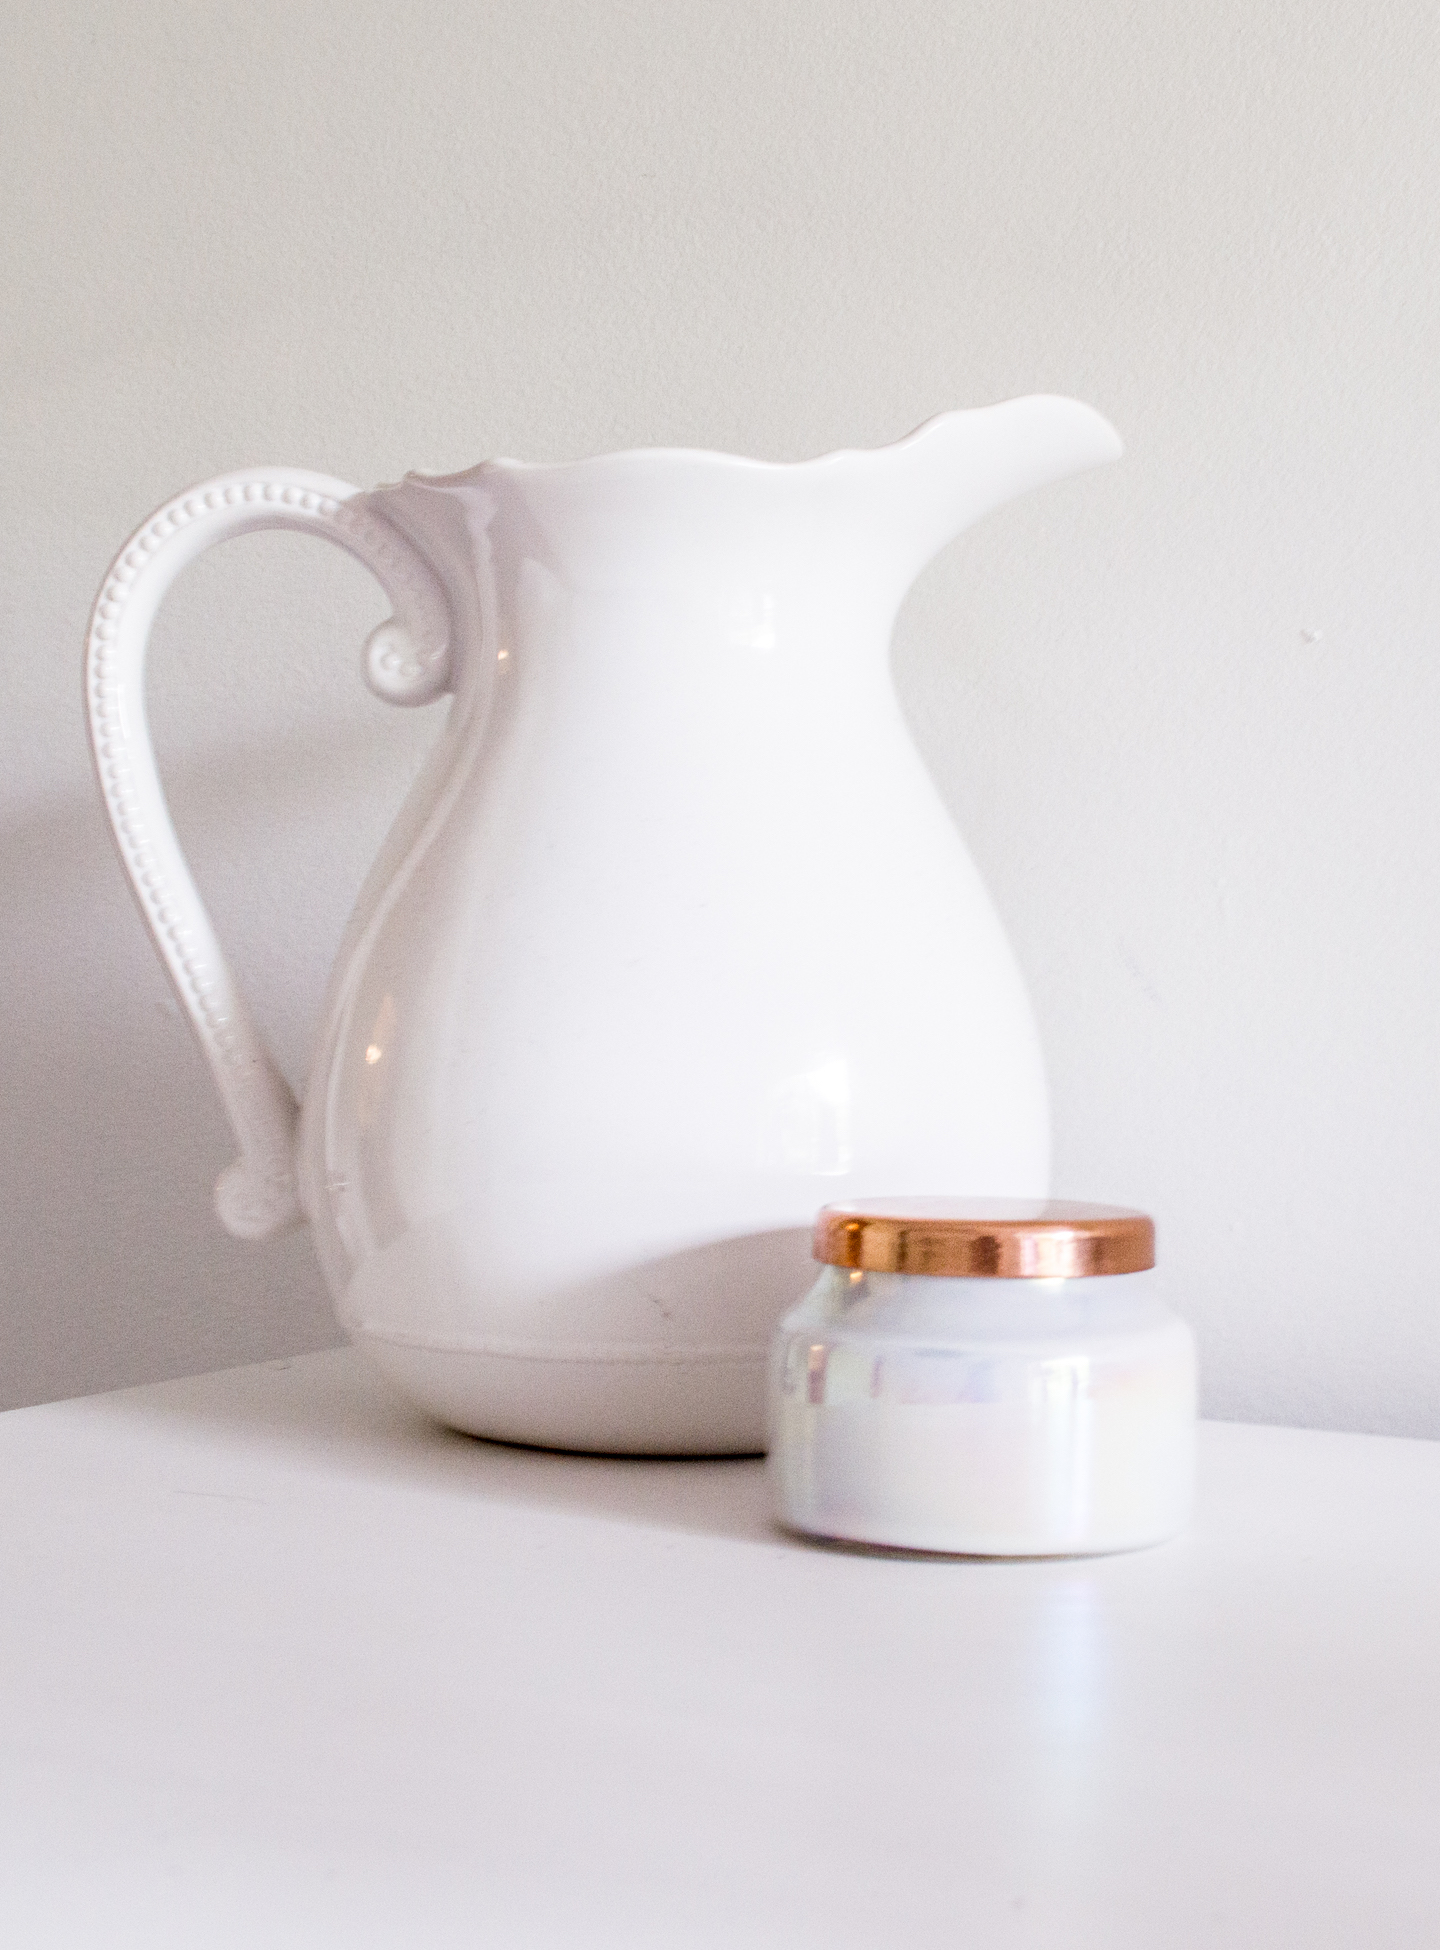 White Anthropologie Pitcher with Mini Volcano Candle